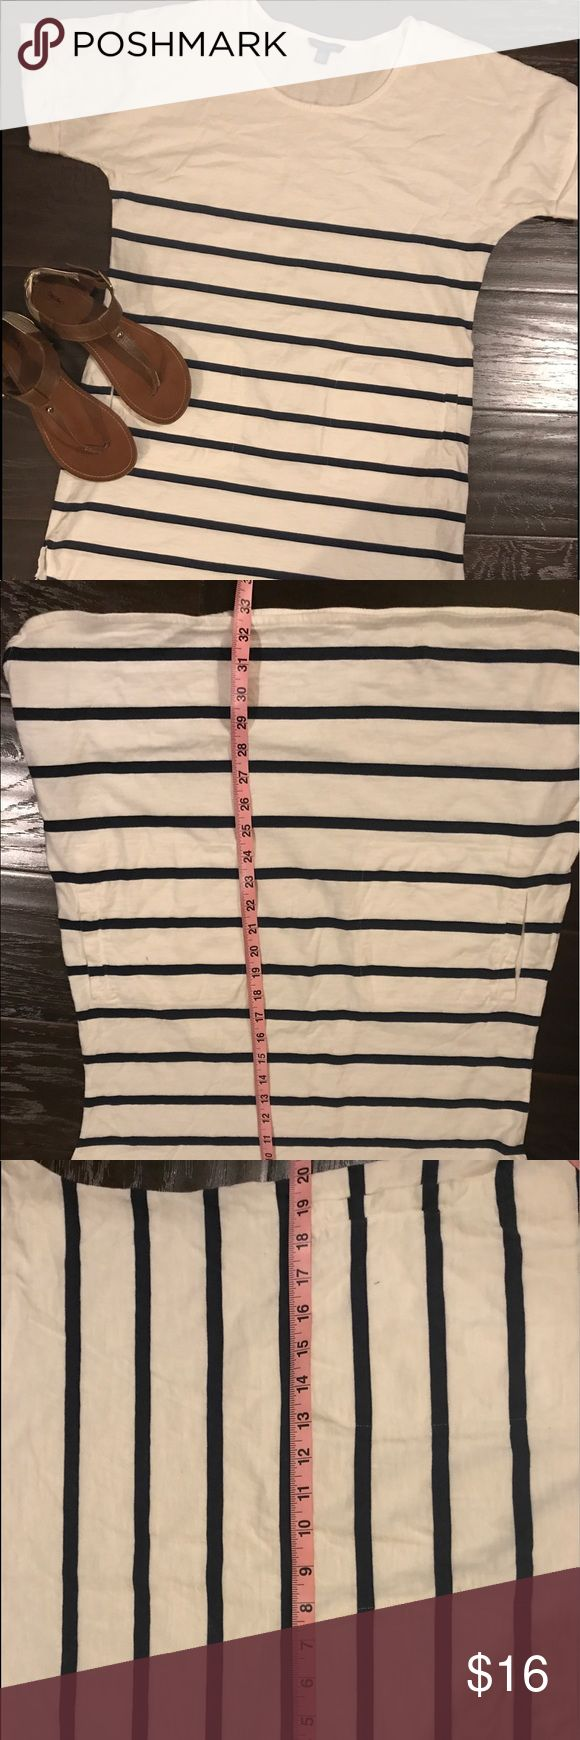 Tommy Hilfiger Summer Dress Perfect Summer dress Sz Large. So comfortable and thick enough to wear without worrying about it being see through. Has plenty of wear left. (Smoke free, pet free home, accessories not included) Tommy Hilfiger Dresses Midi